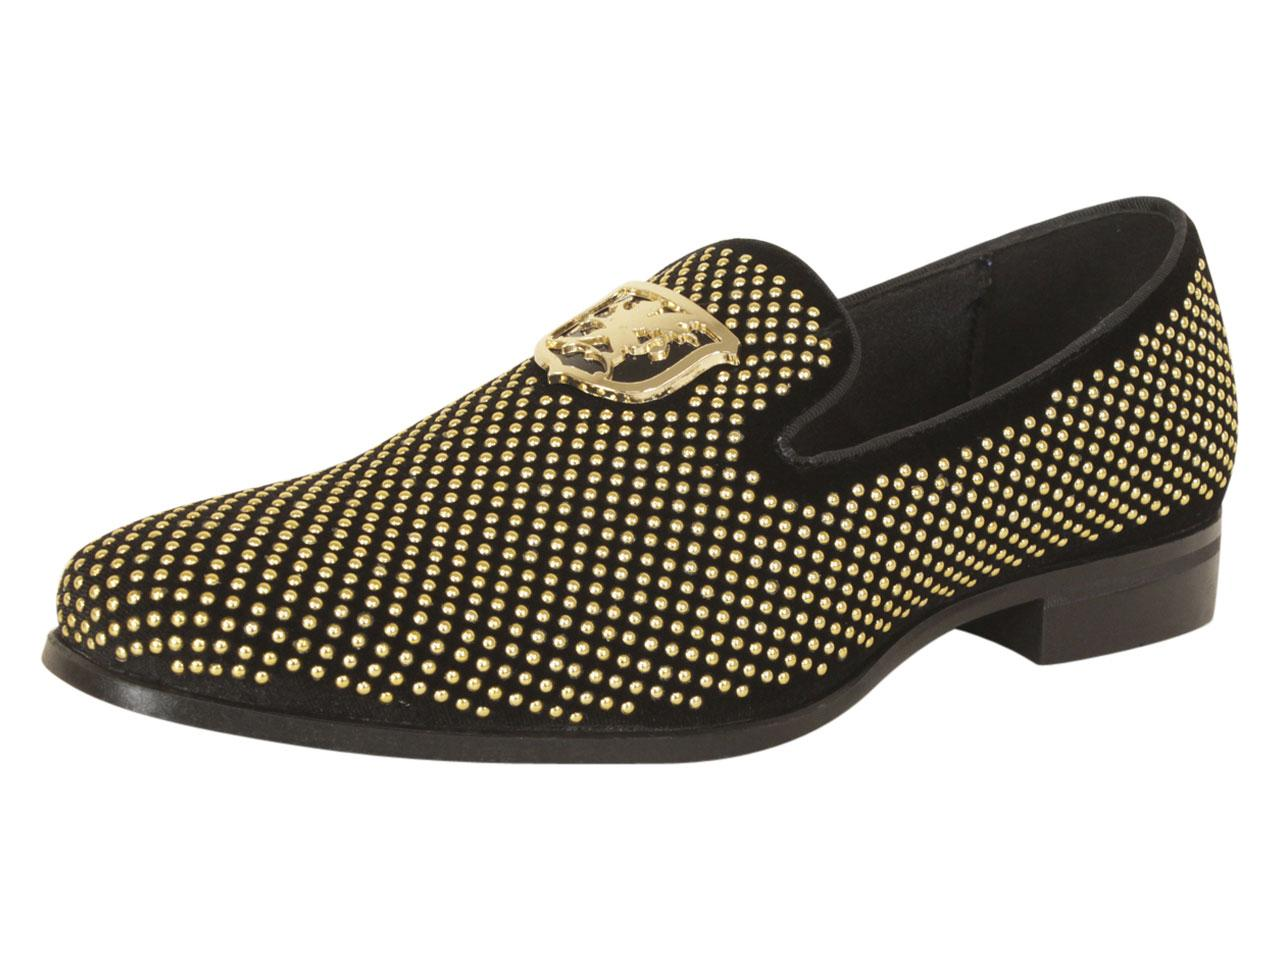 Image of - Black/Gold - 8.5 D(M) US